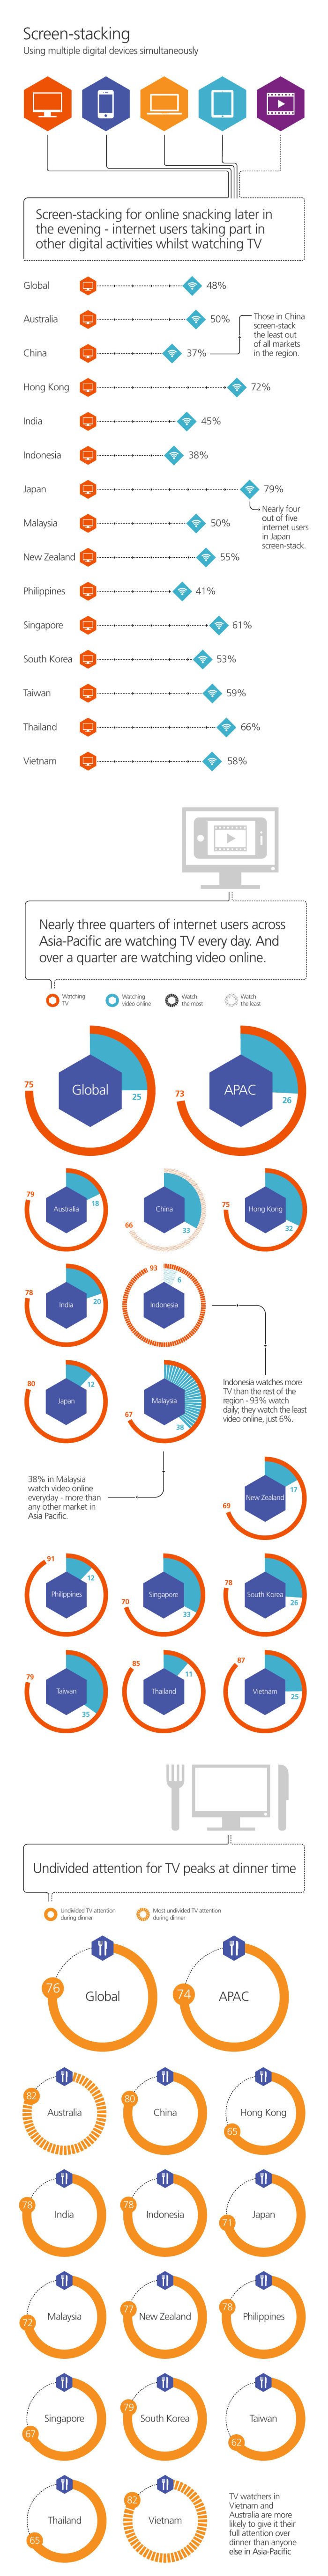 tns-connected-life-infographic-apac-jul2014